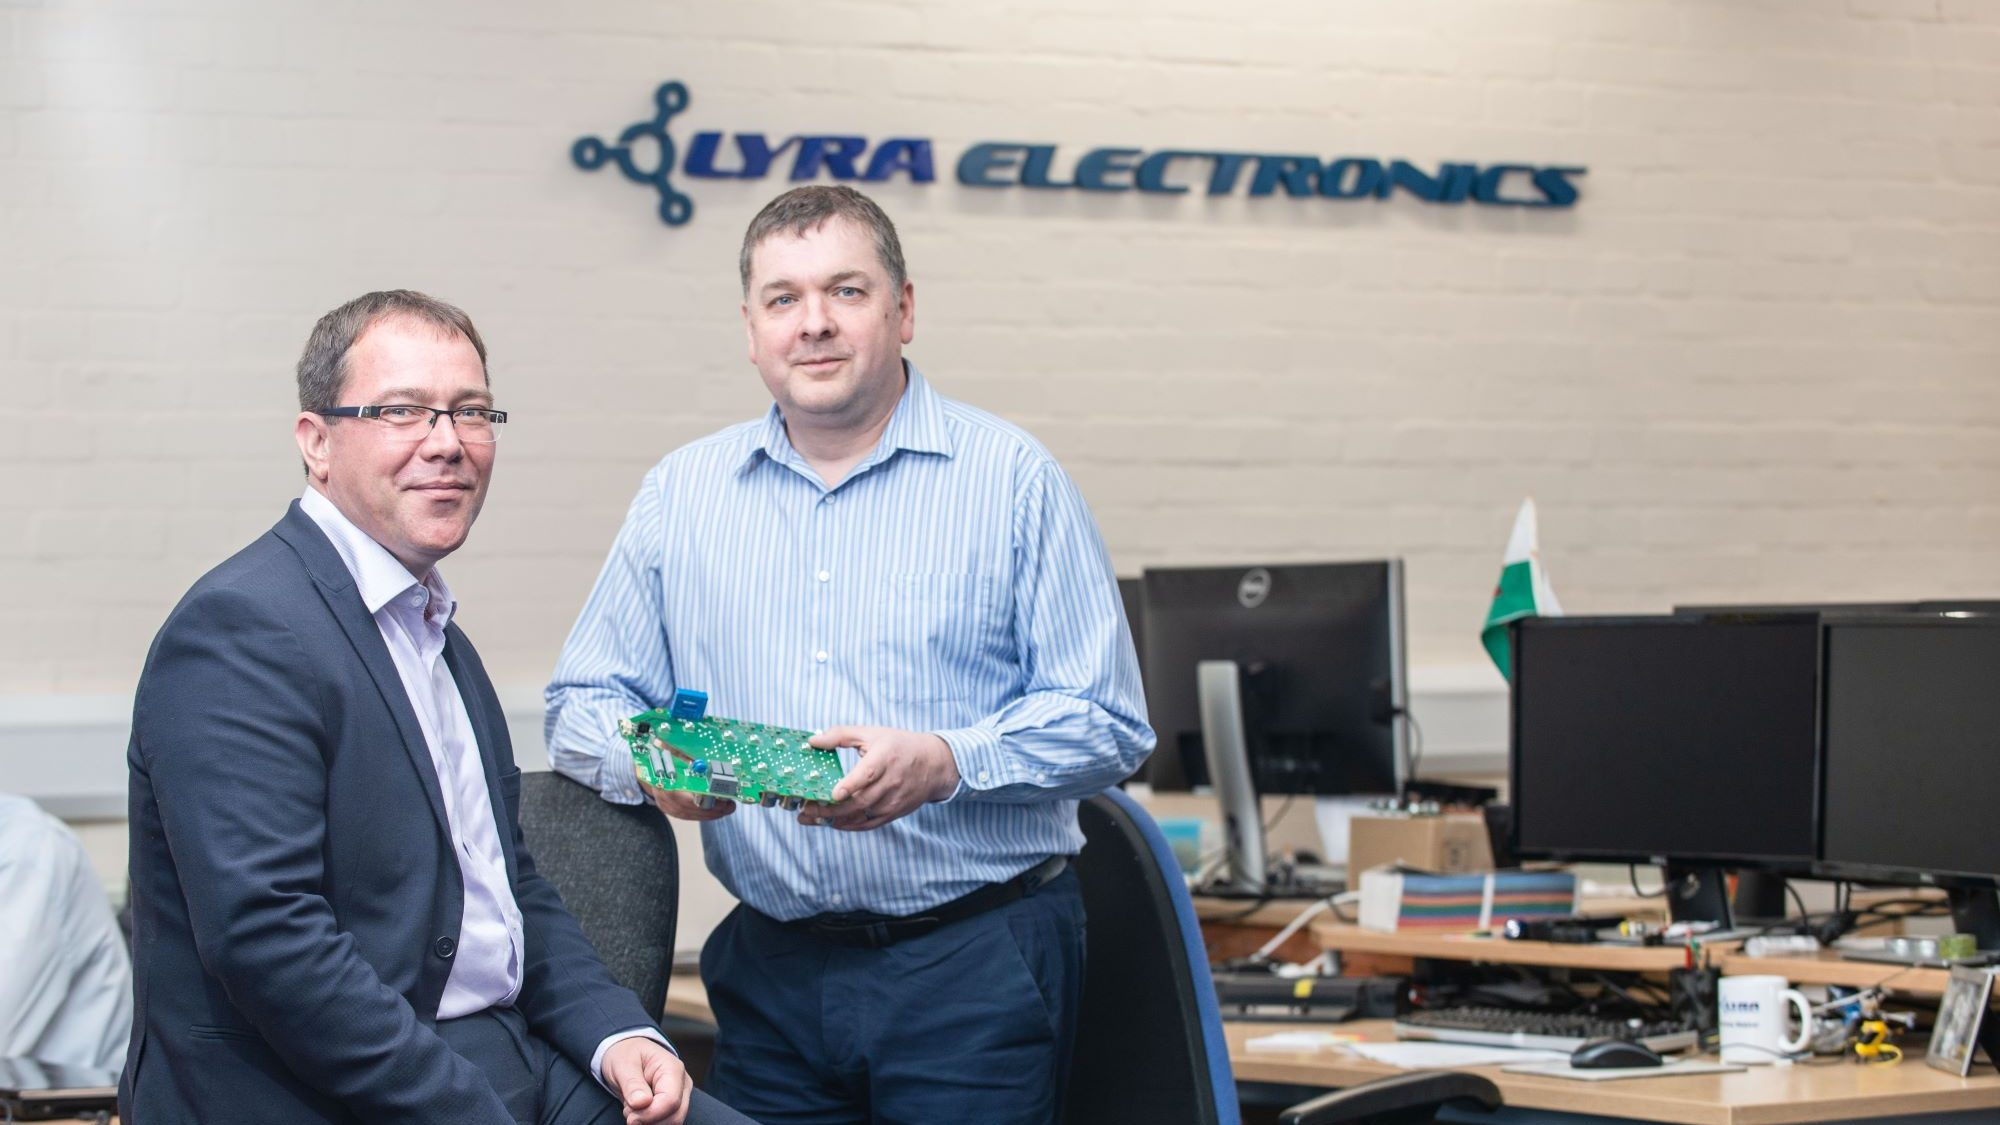 Support for Warwickshire firm at the heart of zero emissions tech